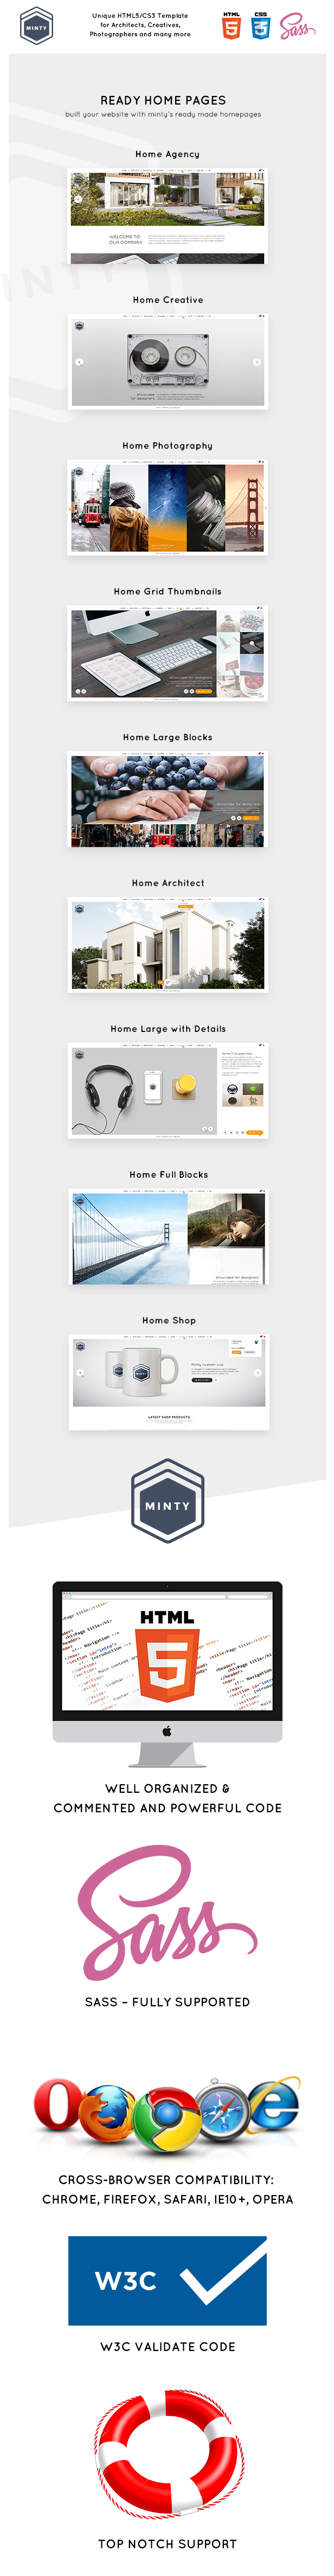 Minty - For Agency, Architect & Photographers, Creatives - 1